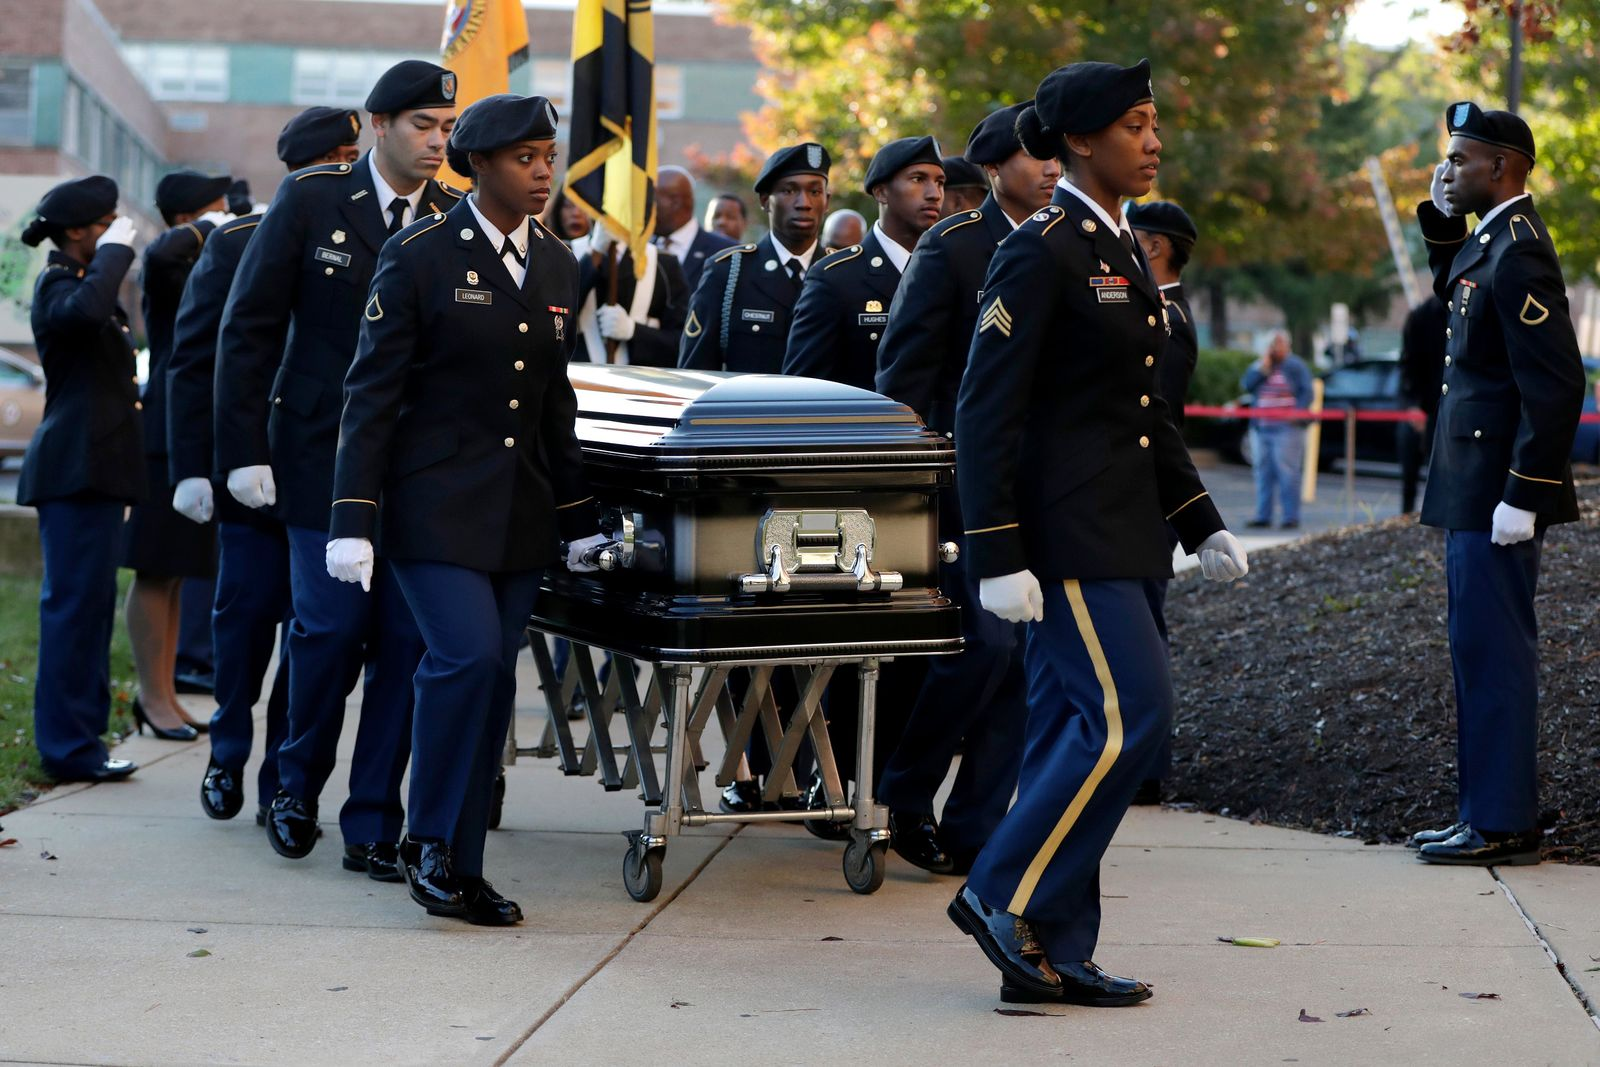 Pallbearers walk with a casket carrying the body of U.S. Rep. Elijah Cummings as it arrives at Morgan State University ahead of a public viewing, Wednesday, Oct. 23, 2019, in Baltimore. (AP Photo/Julio Cortez)